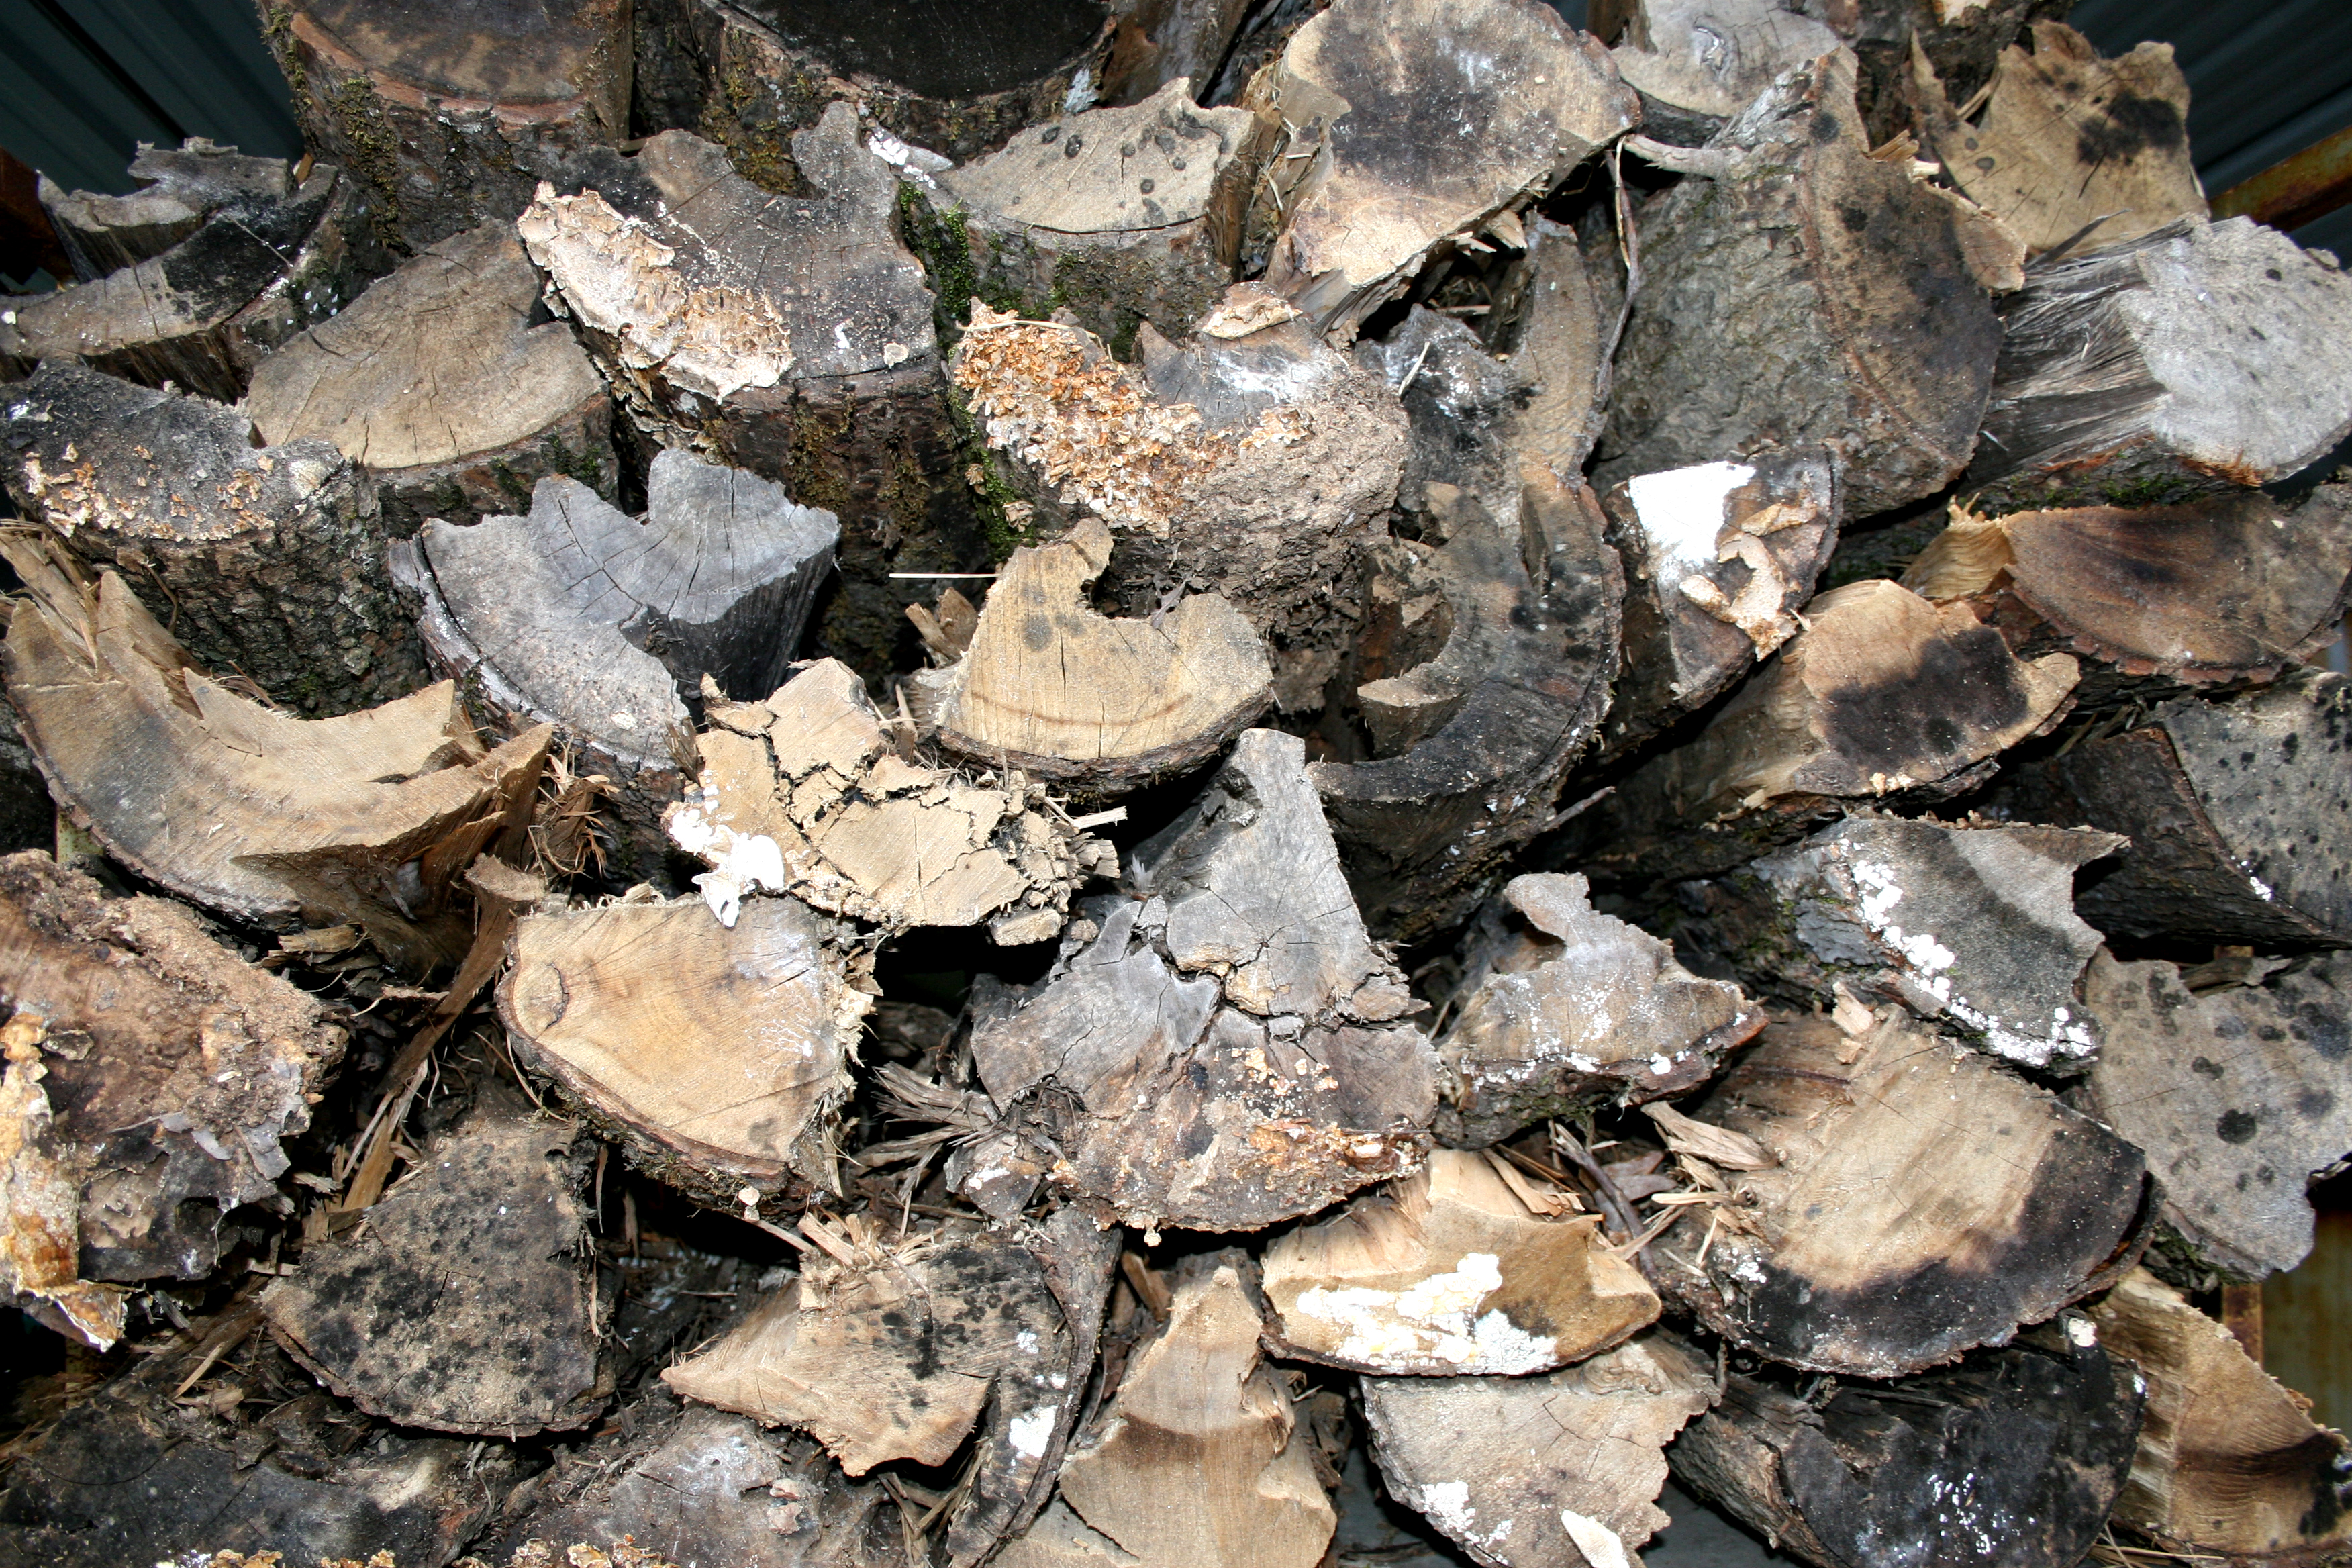 Burning freshly cut wood is very inefficient as a cord of freshly cut oak can contain the equivalent to five and a half 55-gallon drums of water.